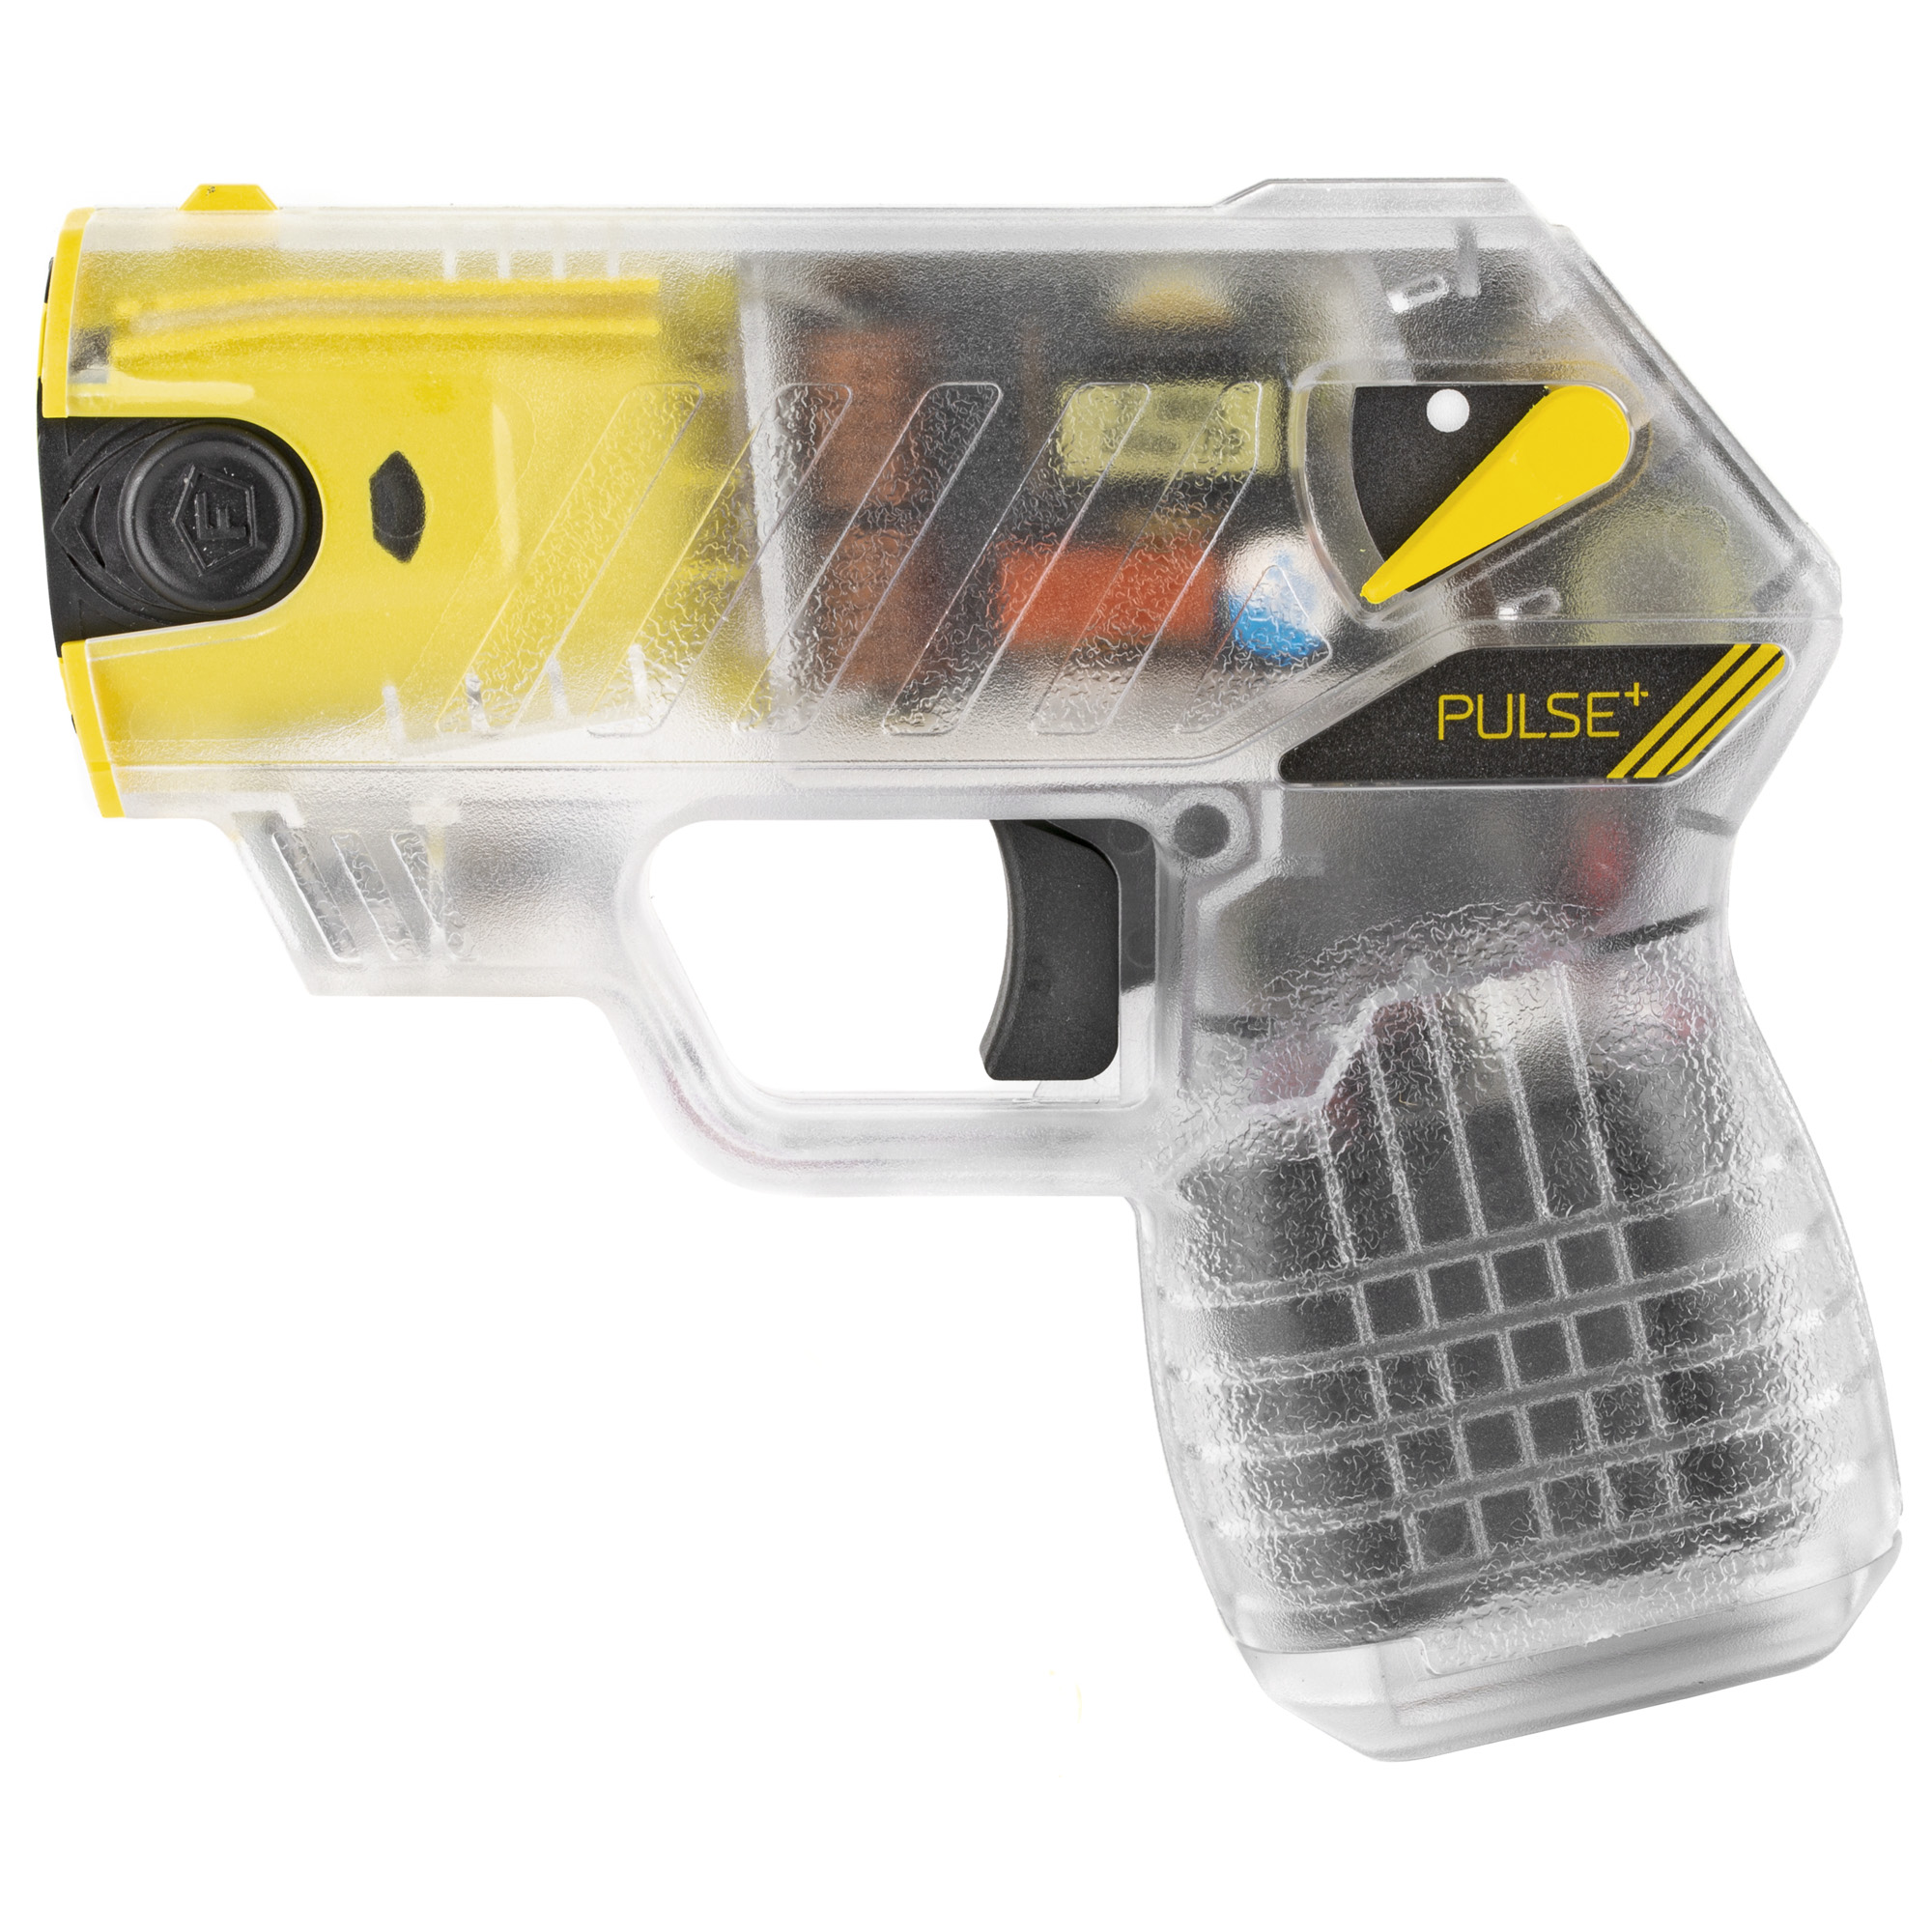 """The TASER Pulse+ brings safety in today's connected world. Using the same less-lethal technology as law enforcement"""" the Pulse+ integrates with your mobile phone via the Noonlight mobile app to contact emergency dispatch when fired. No fumbling for the phone or freezing up in fear. Pull the trigger and help is on the way. Weighing in at just 8 ounces"""" this high-tech"""" intuitively-designed device is revolutionizing the self-defense market. You're fast-paced and connected"""" Your self-defense tool should be too."""